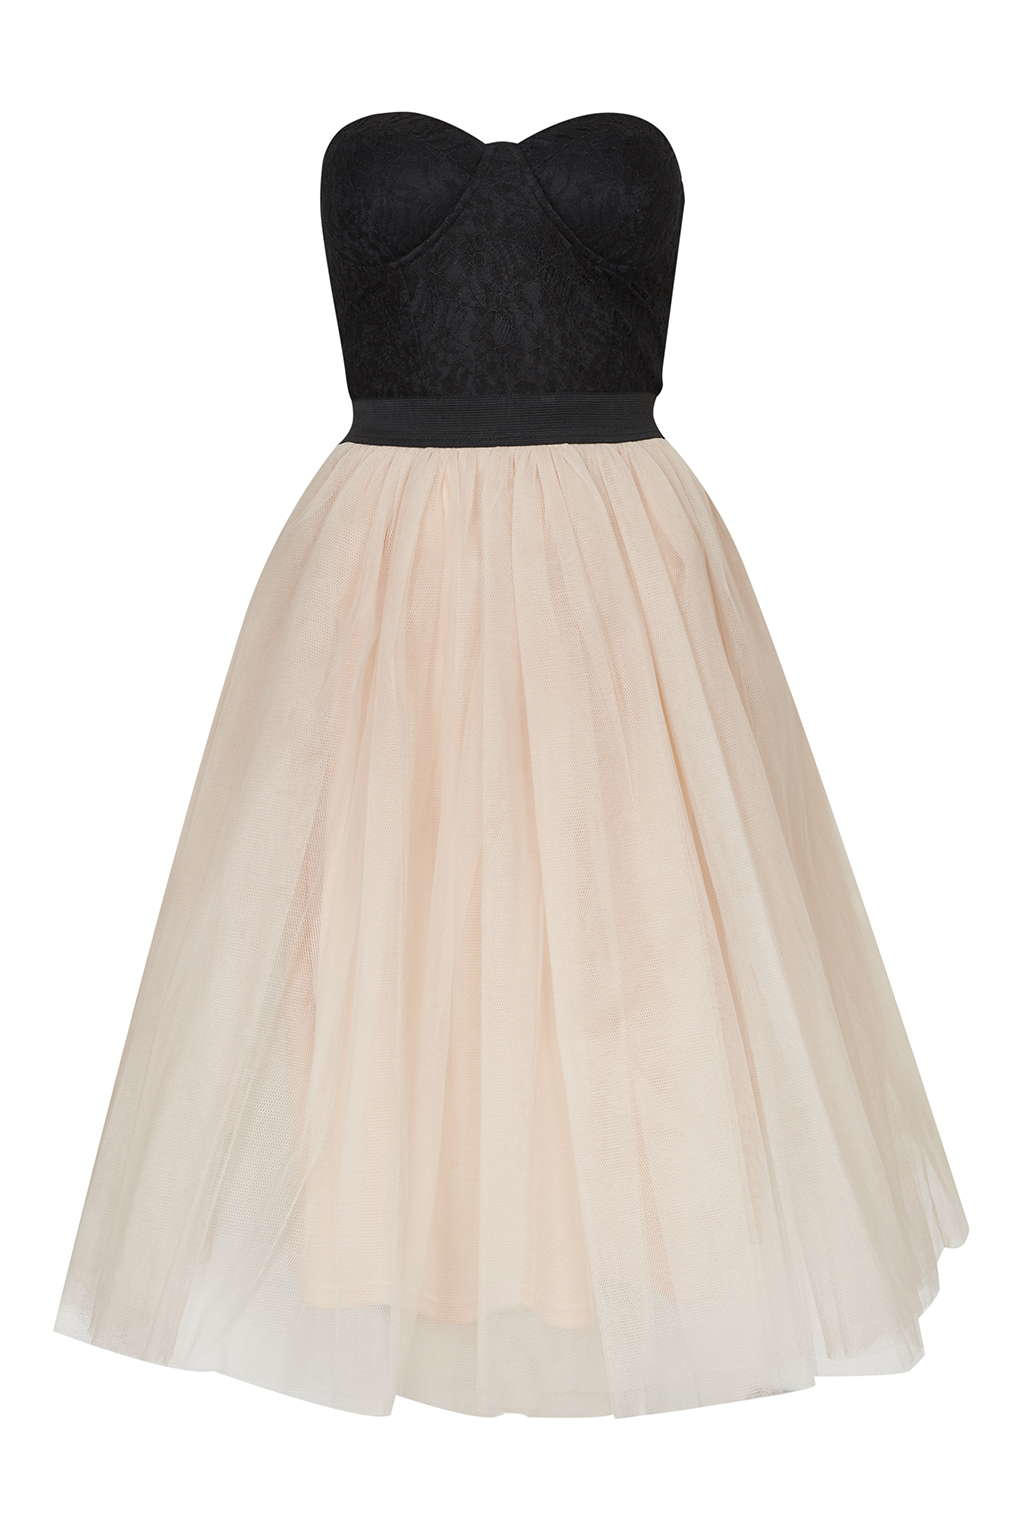 Topshop Bustier Tutu Prom Dress By Rare in Black - Lyst